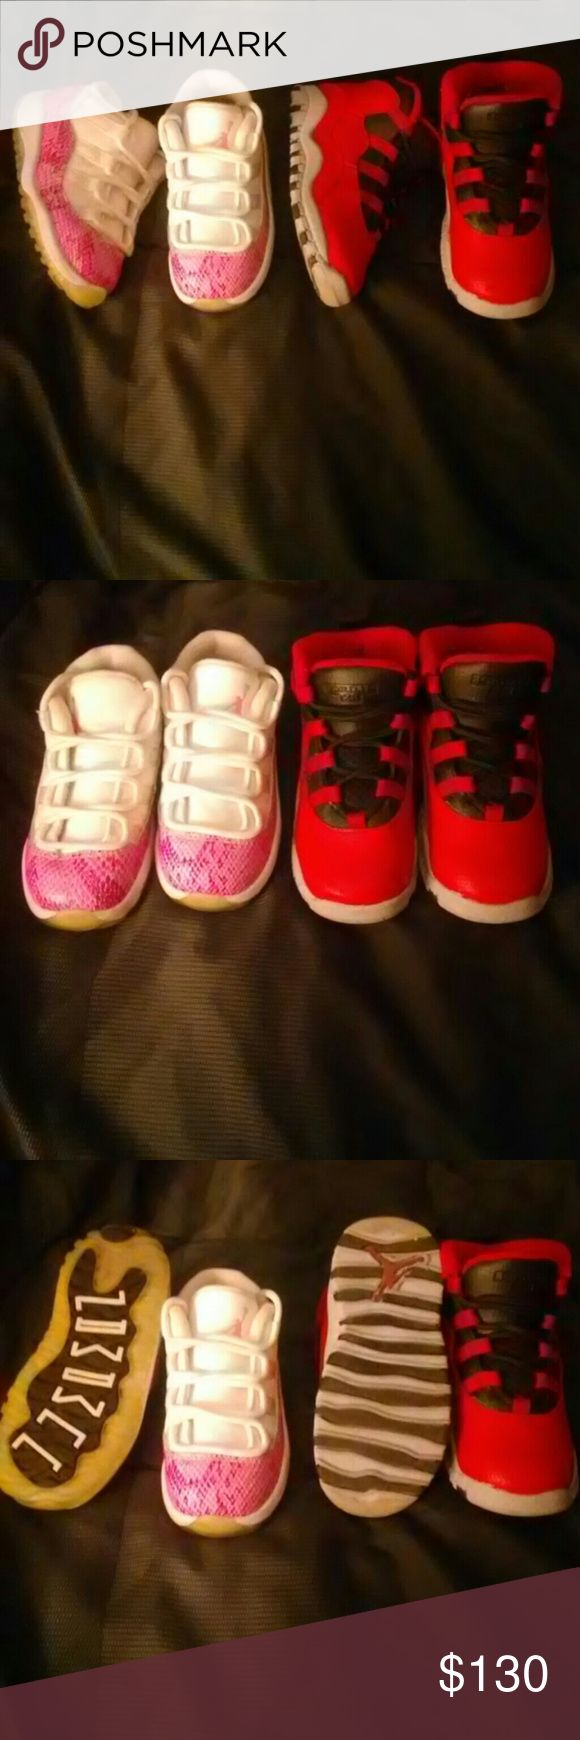 Sizes 8.5c & 8c shoes Jordan Low Retro 11's-pink/white snake skin.. Jordan 10 Retro-Bulls.. Both in like new conditions with one box..on my Ⓜ page,they are only $65 Jordan Shoes Sneakers